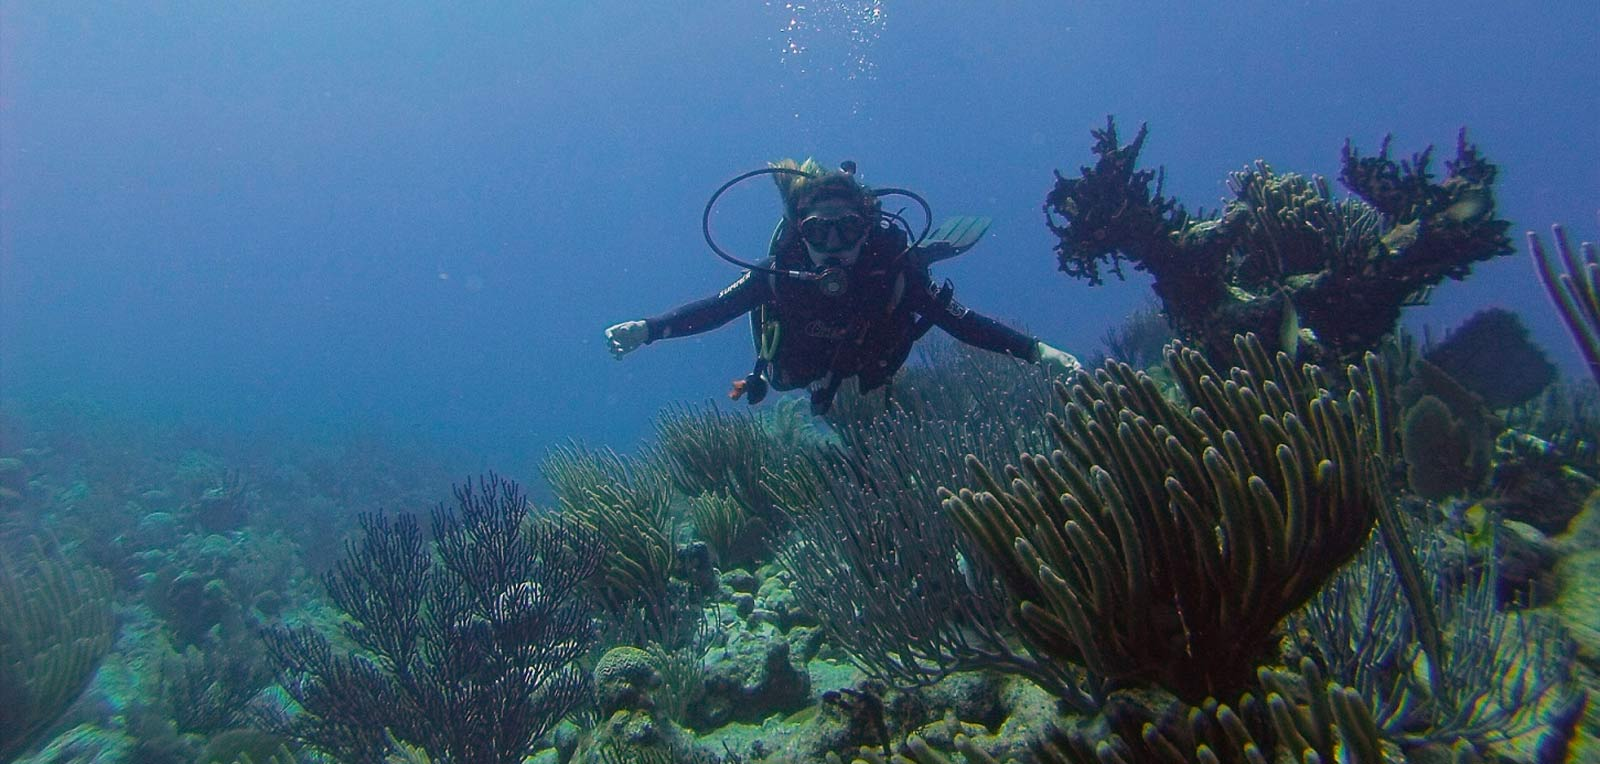 Diving stands out in Cuba's wetland tourism product